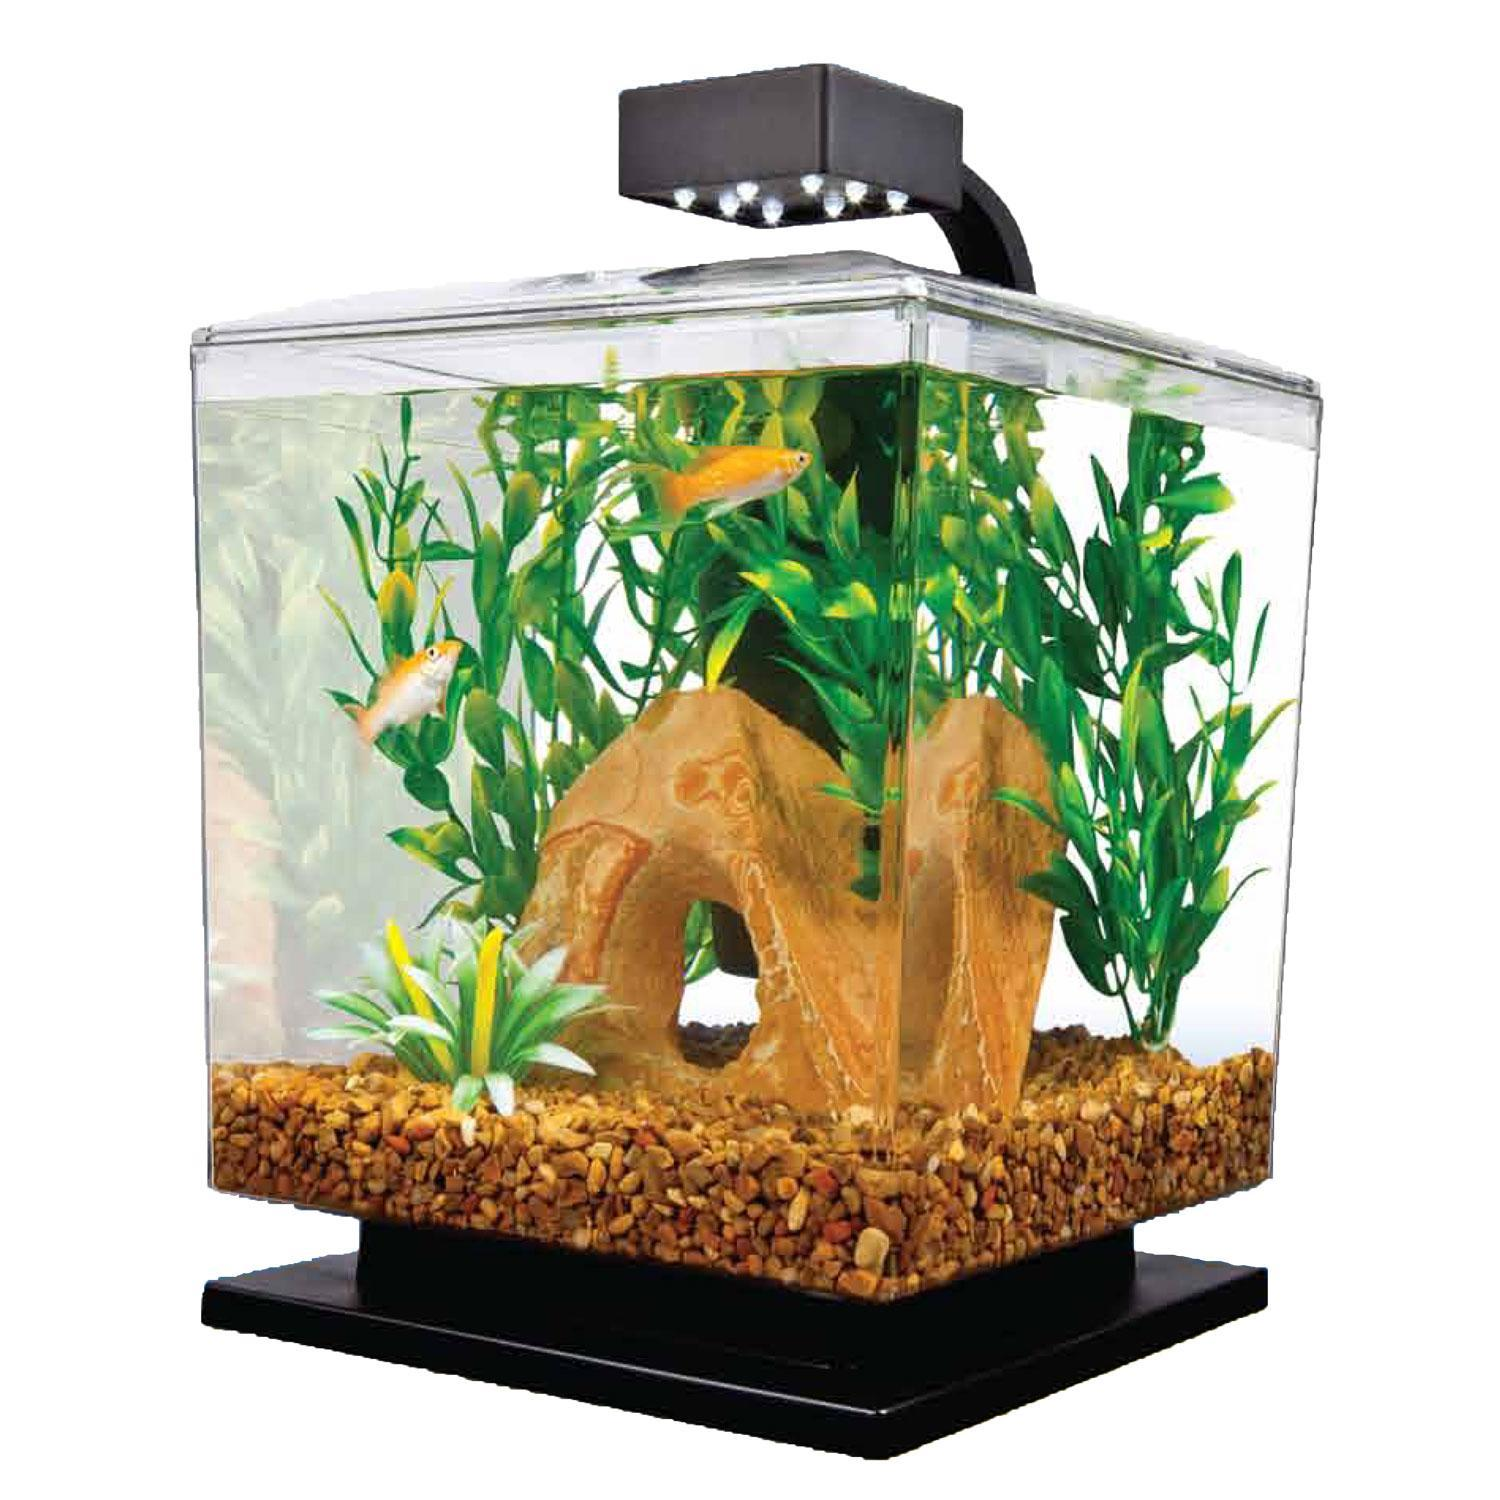 Tetra 1 5 gallon led desktop aquarium kit from for Tetra fish tanks